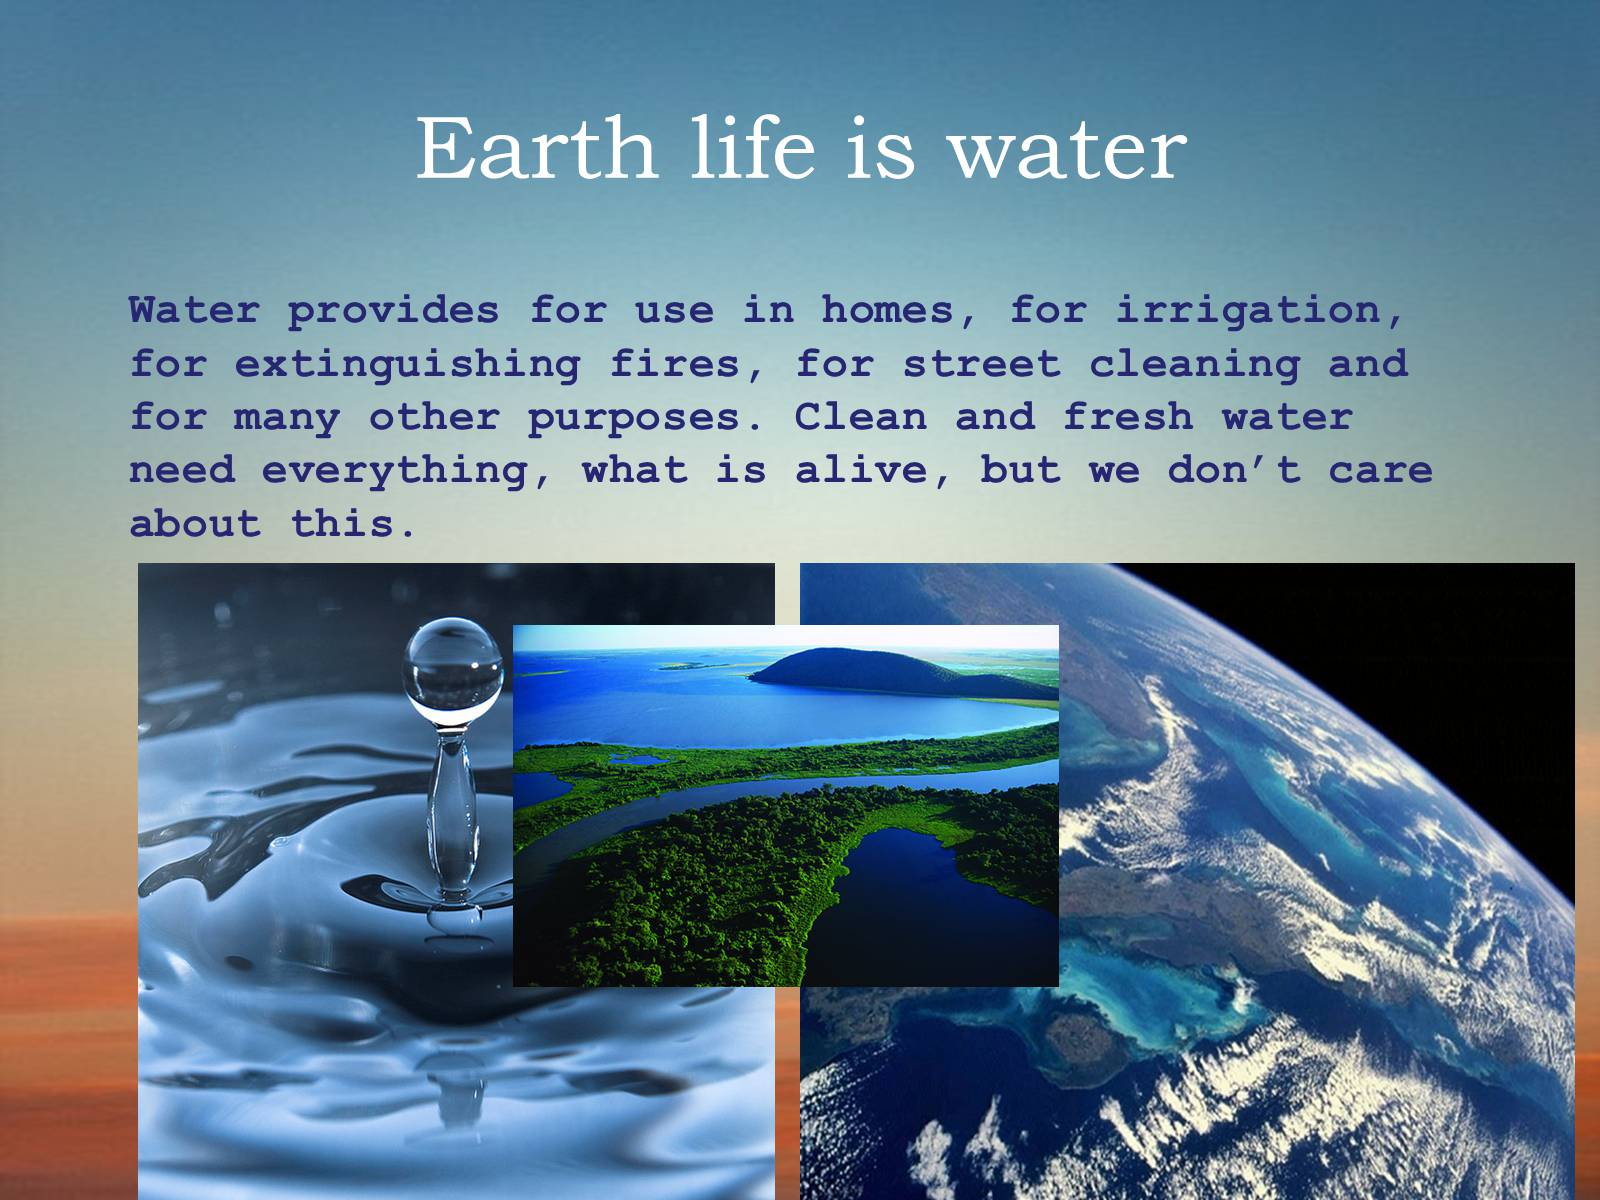 life of human being without fresh water Drinking water is necessary to sustain life, of course, but so too is water needed to provide sanitation, irrigate crops, tend livestock, sustain freshwater aquaculture, support industry, and generate electricity.